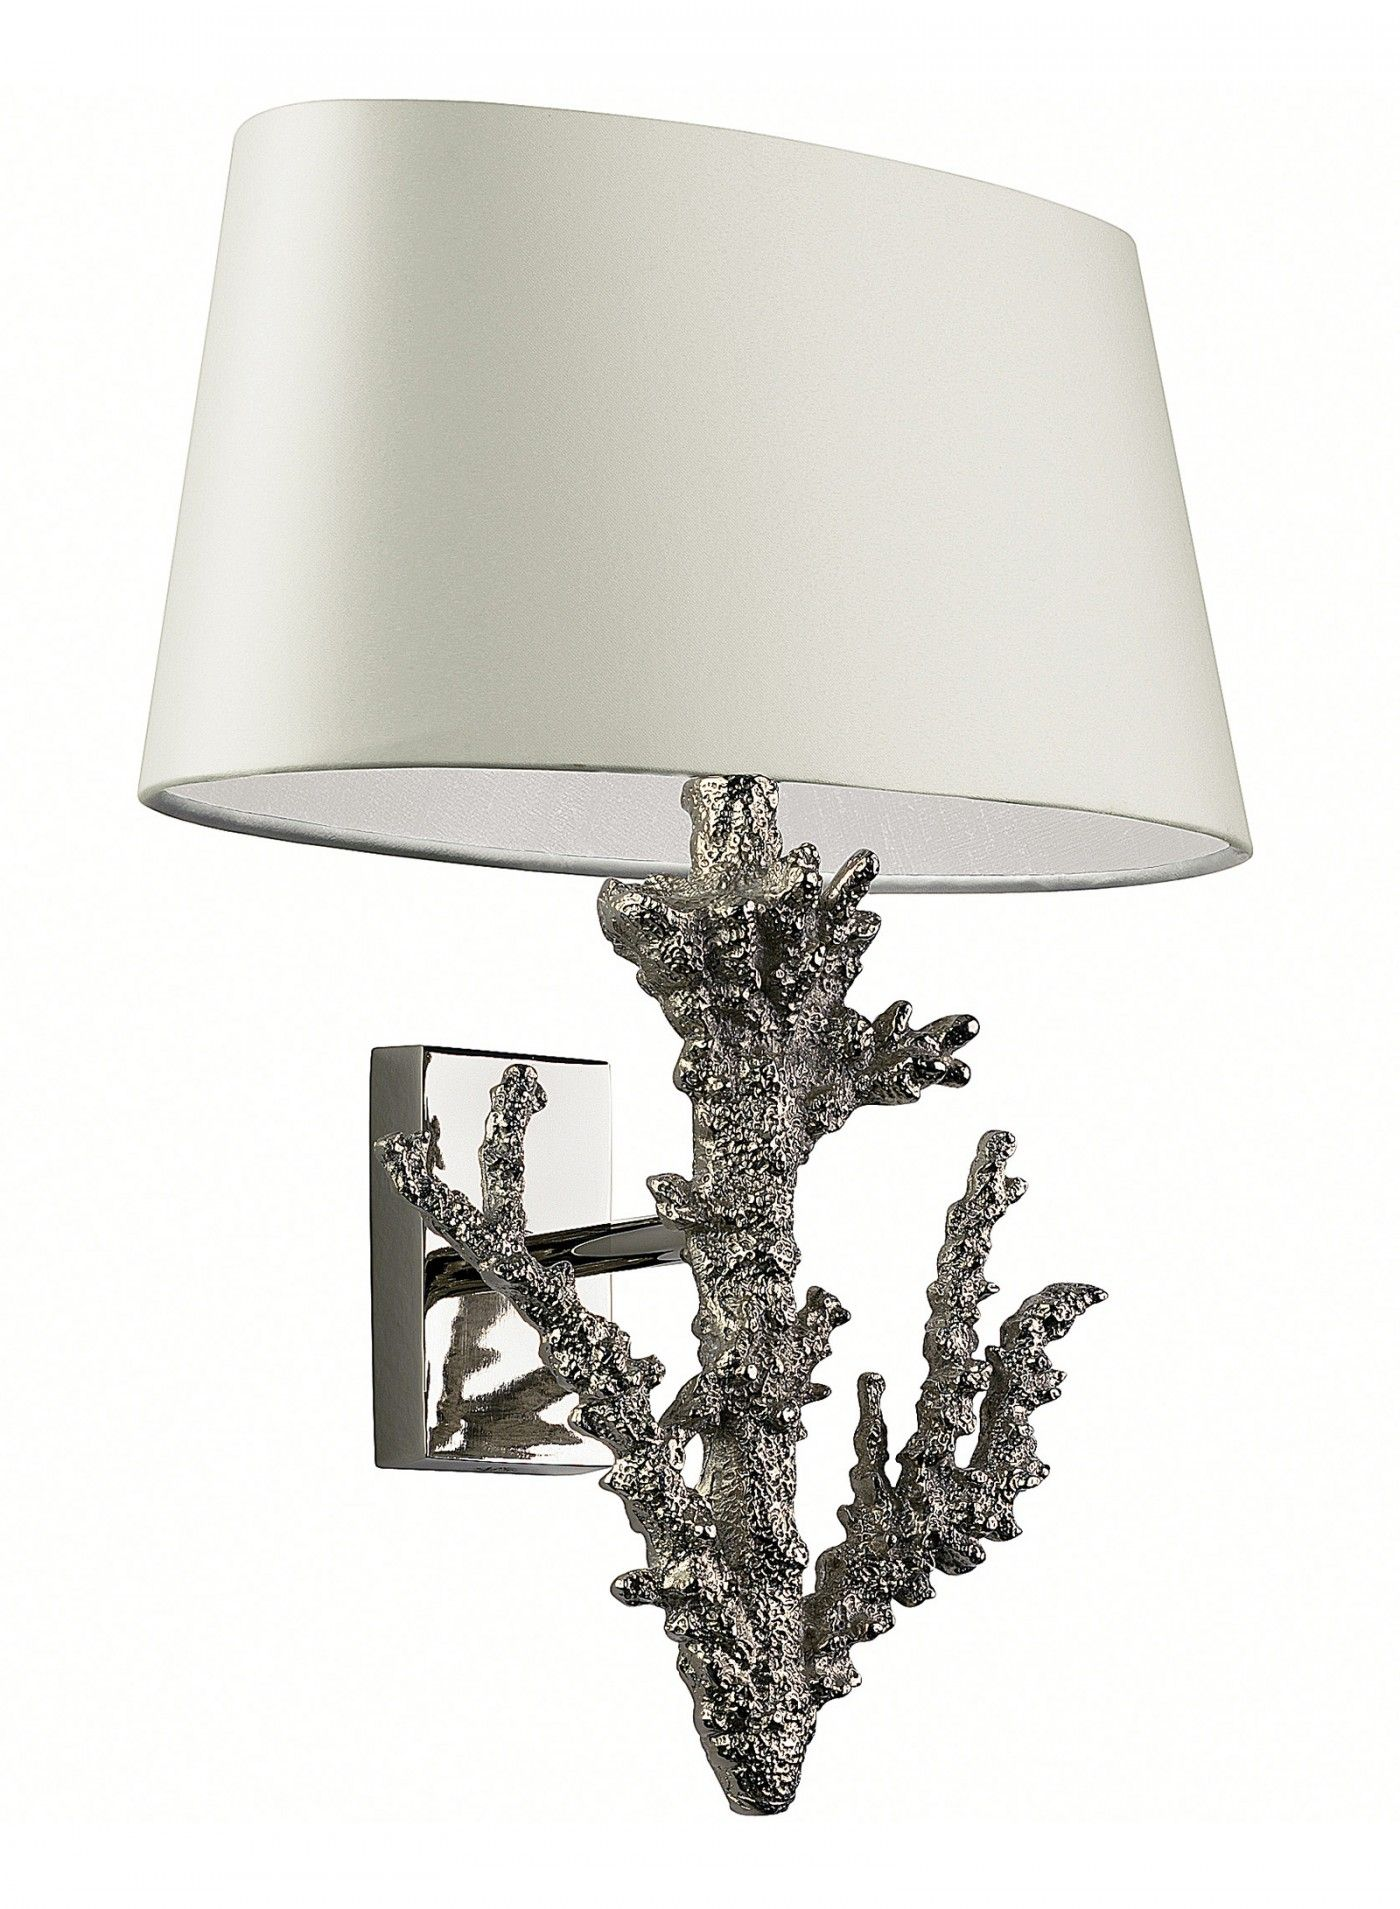 Coral Nickel Wall Light Mister Smith Interiors